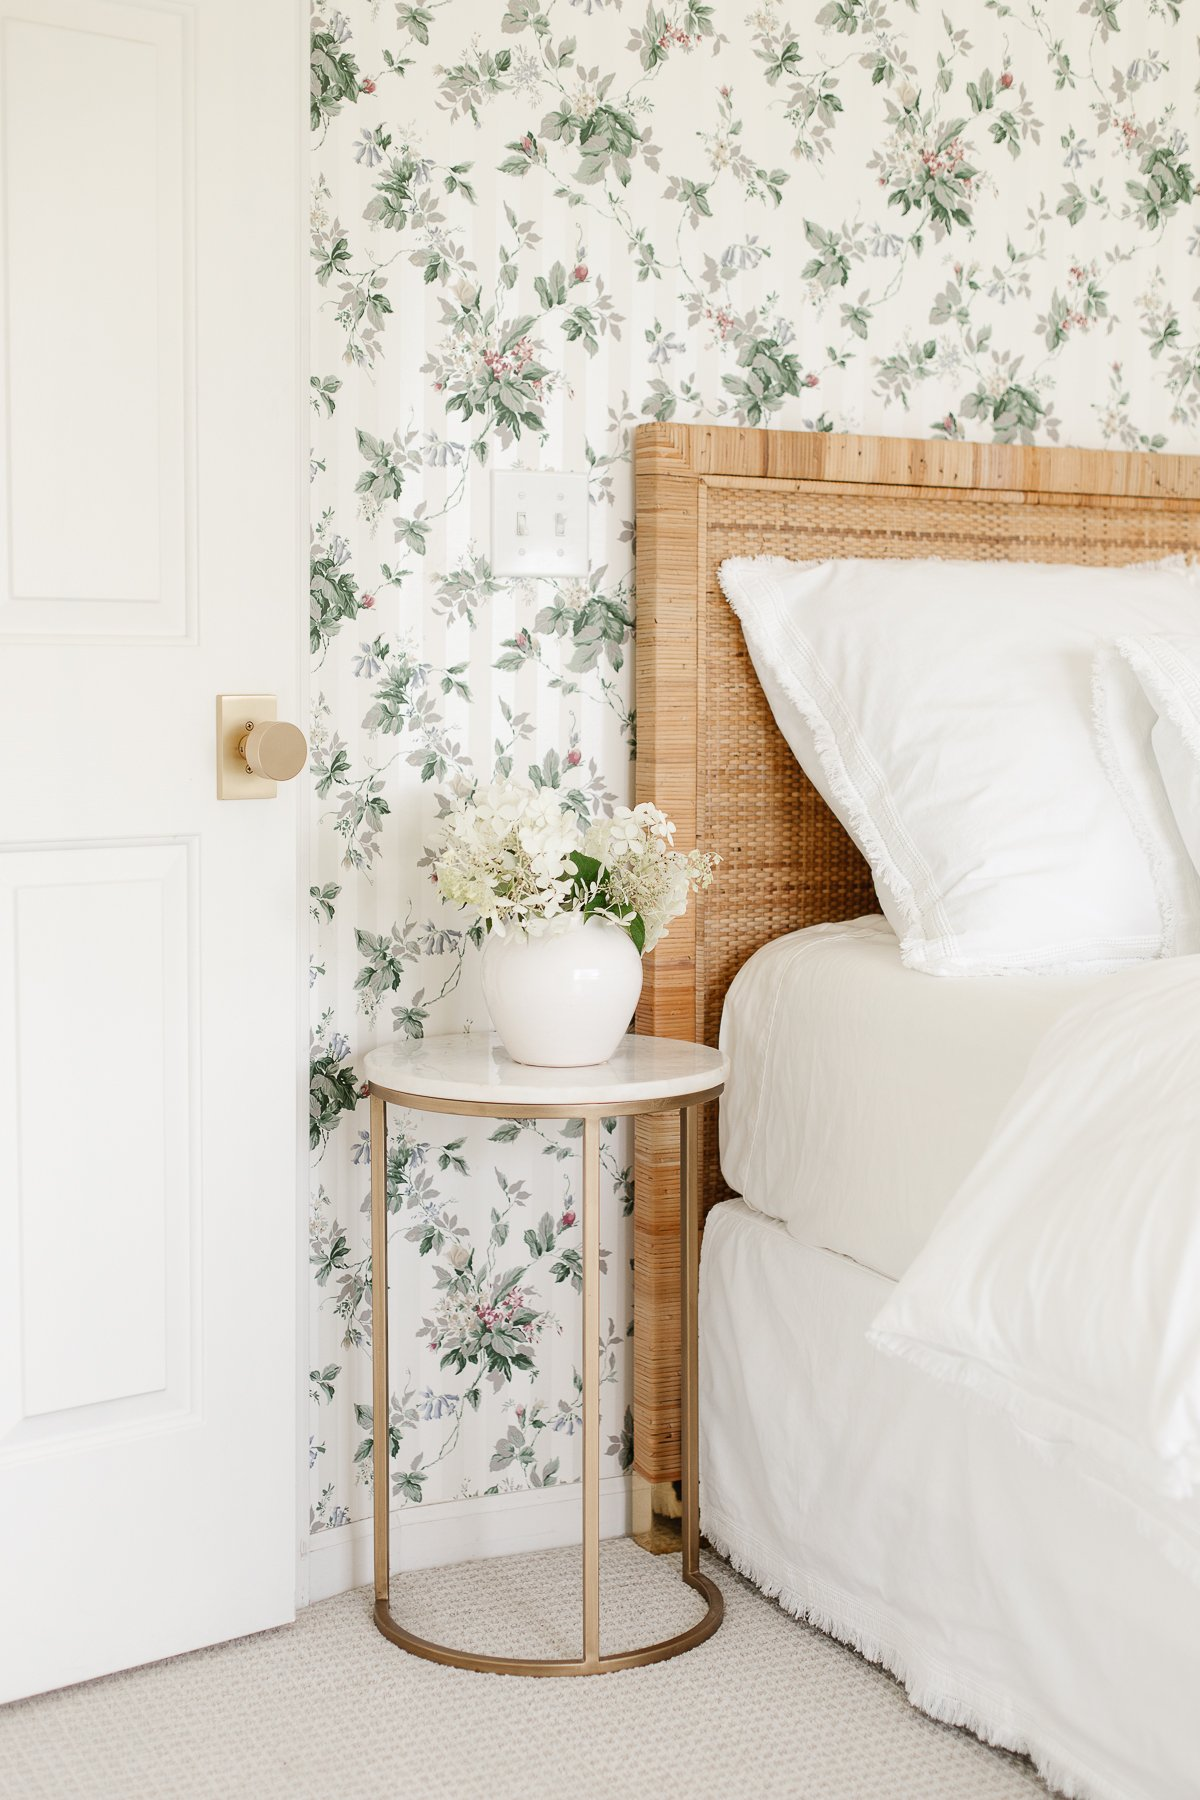 fresh cut limelight hydrangea blooms in a vase on a bedside table